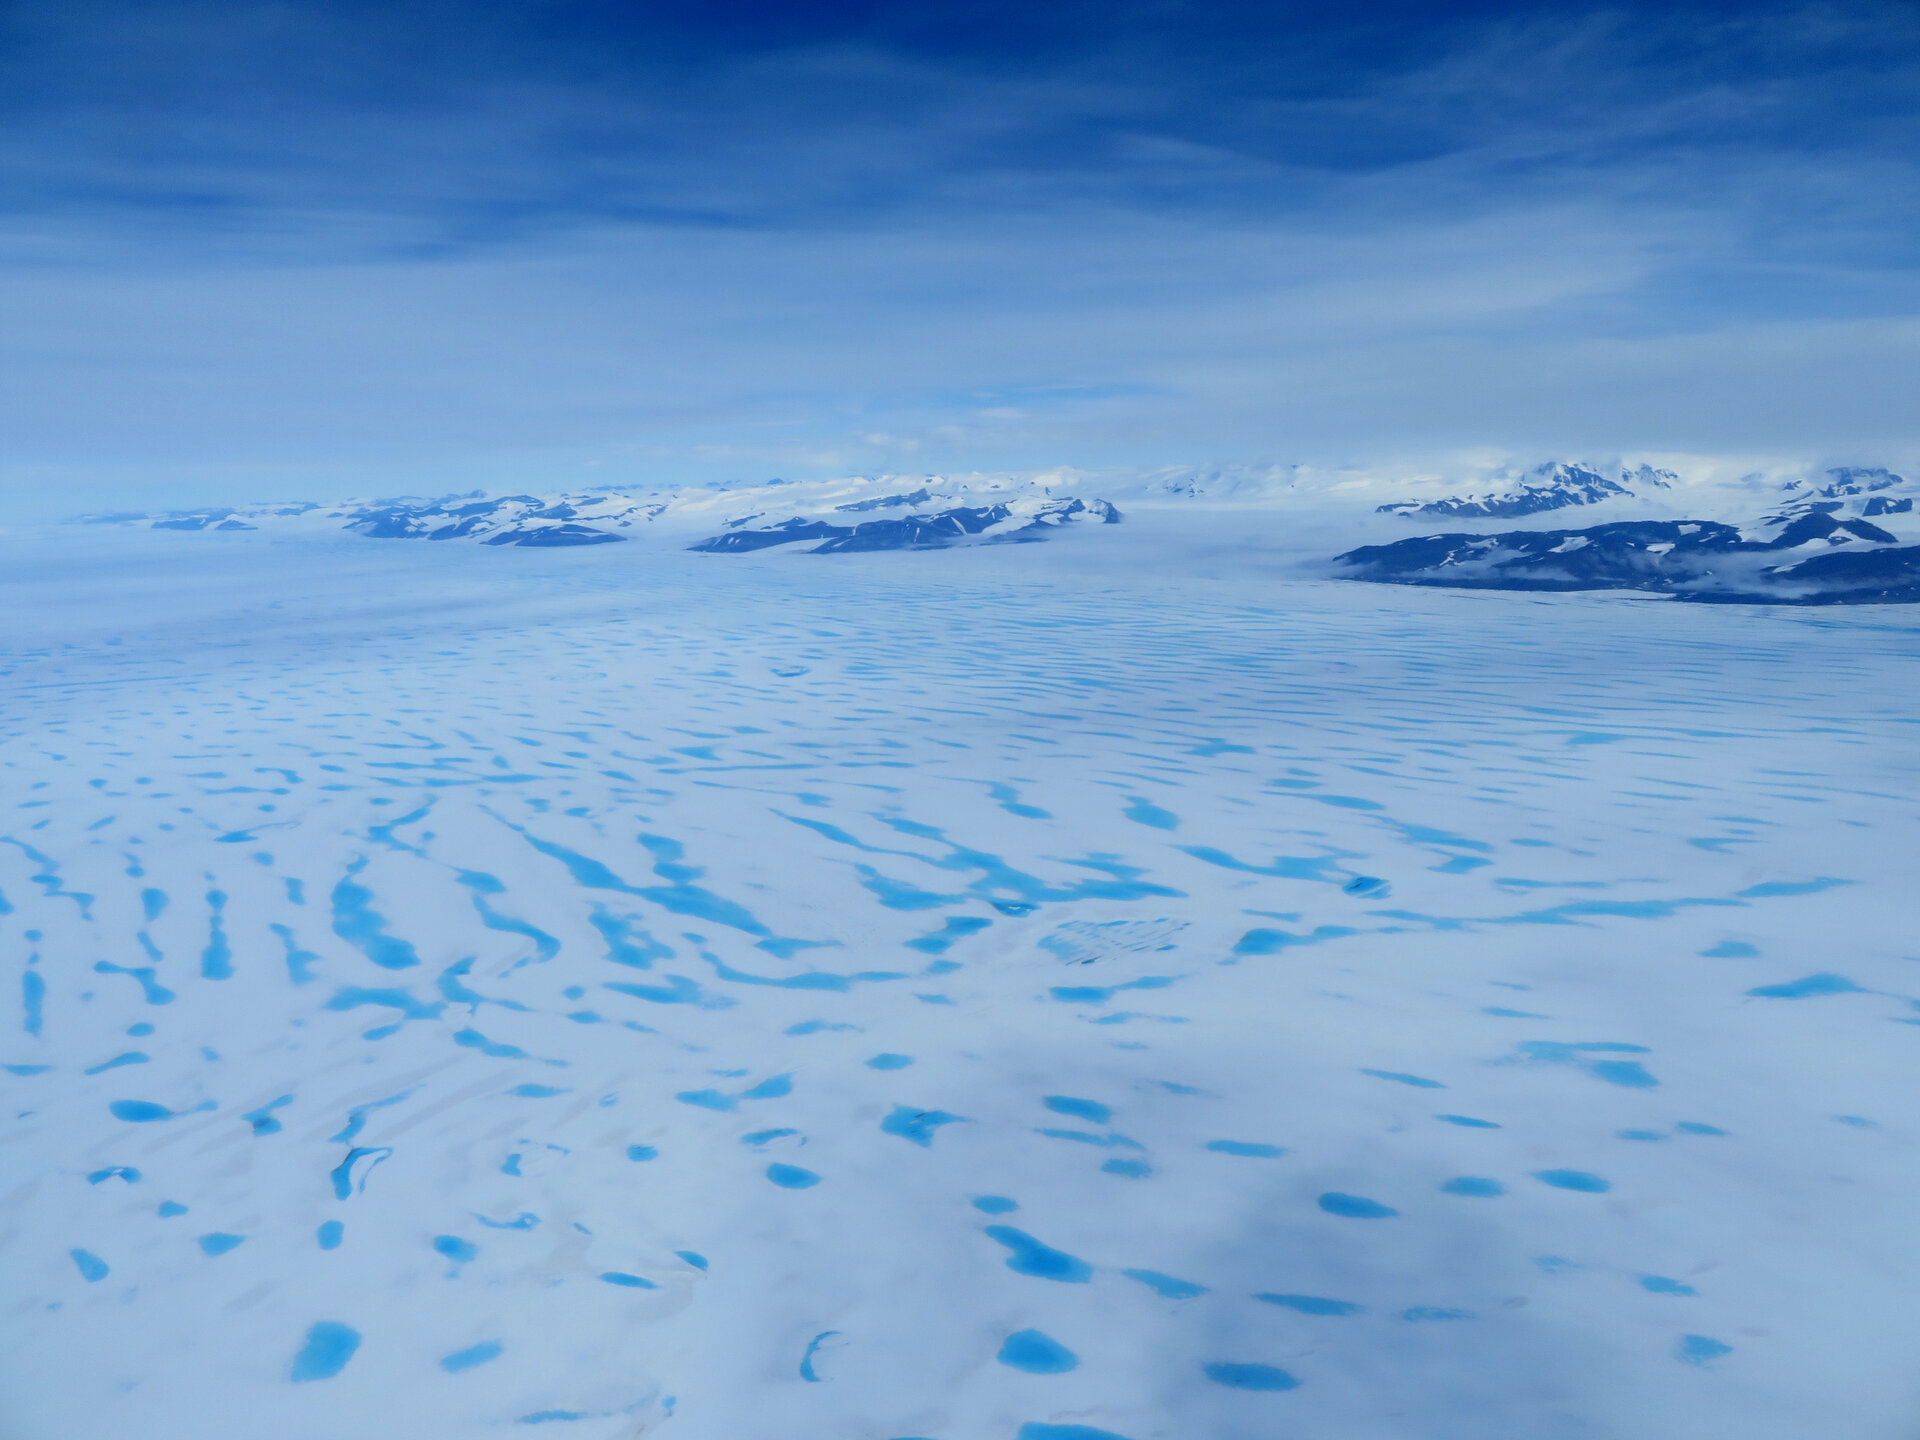 George VI Ice Shelf from the air